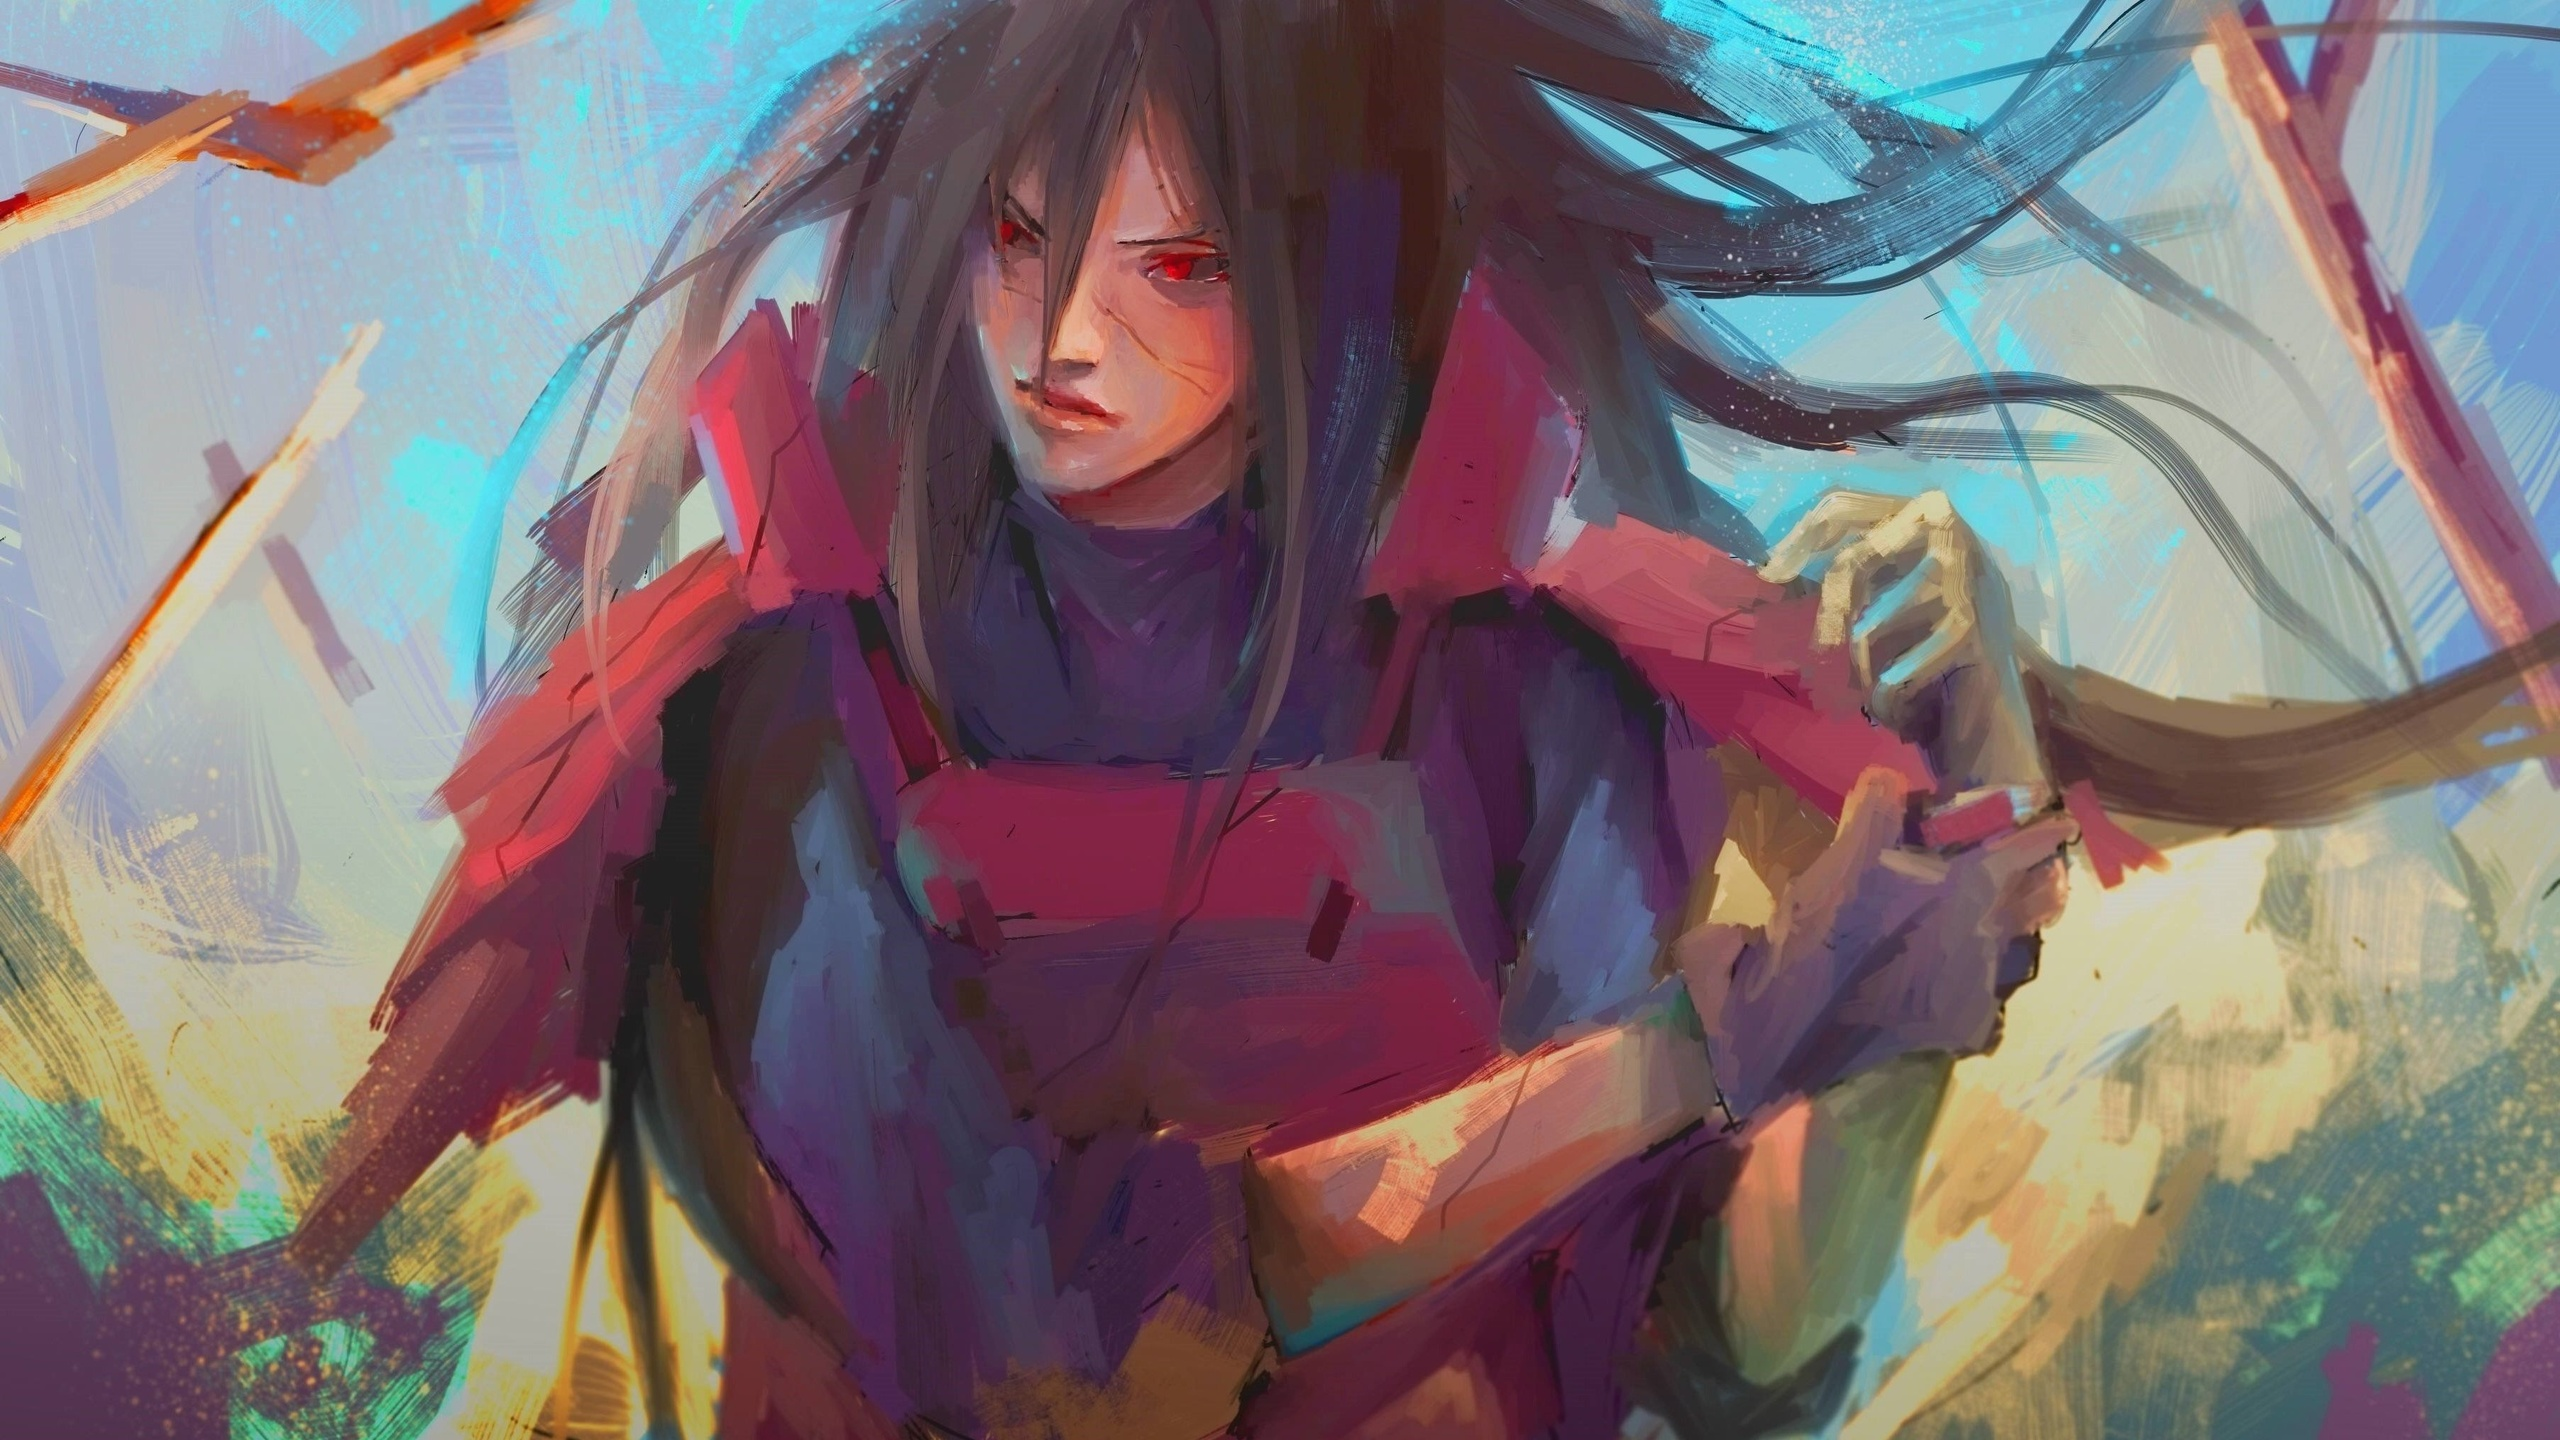 2560x1440 Madara Uchiha Naruto 1440p Resolution Hd 4k Wallpapers Images Backgrounds Photos And Pictures